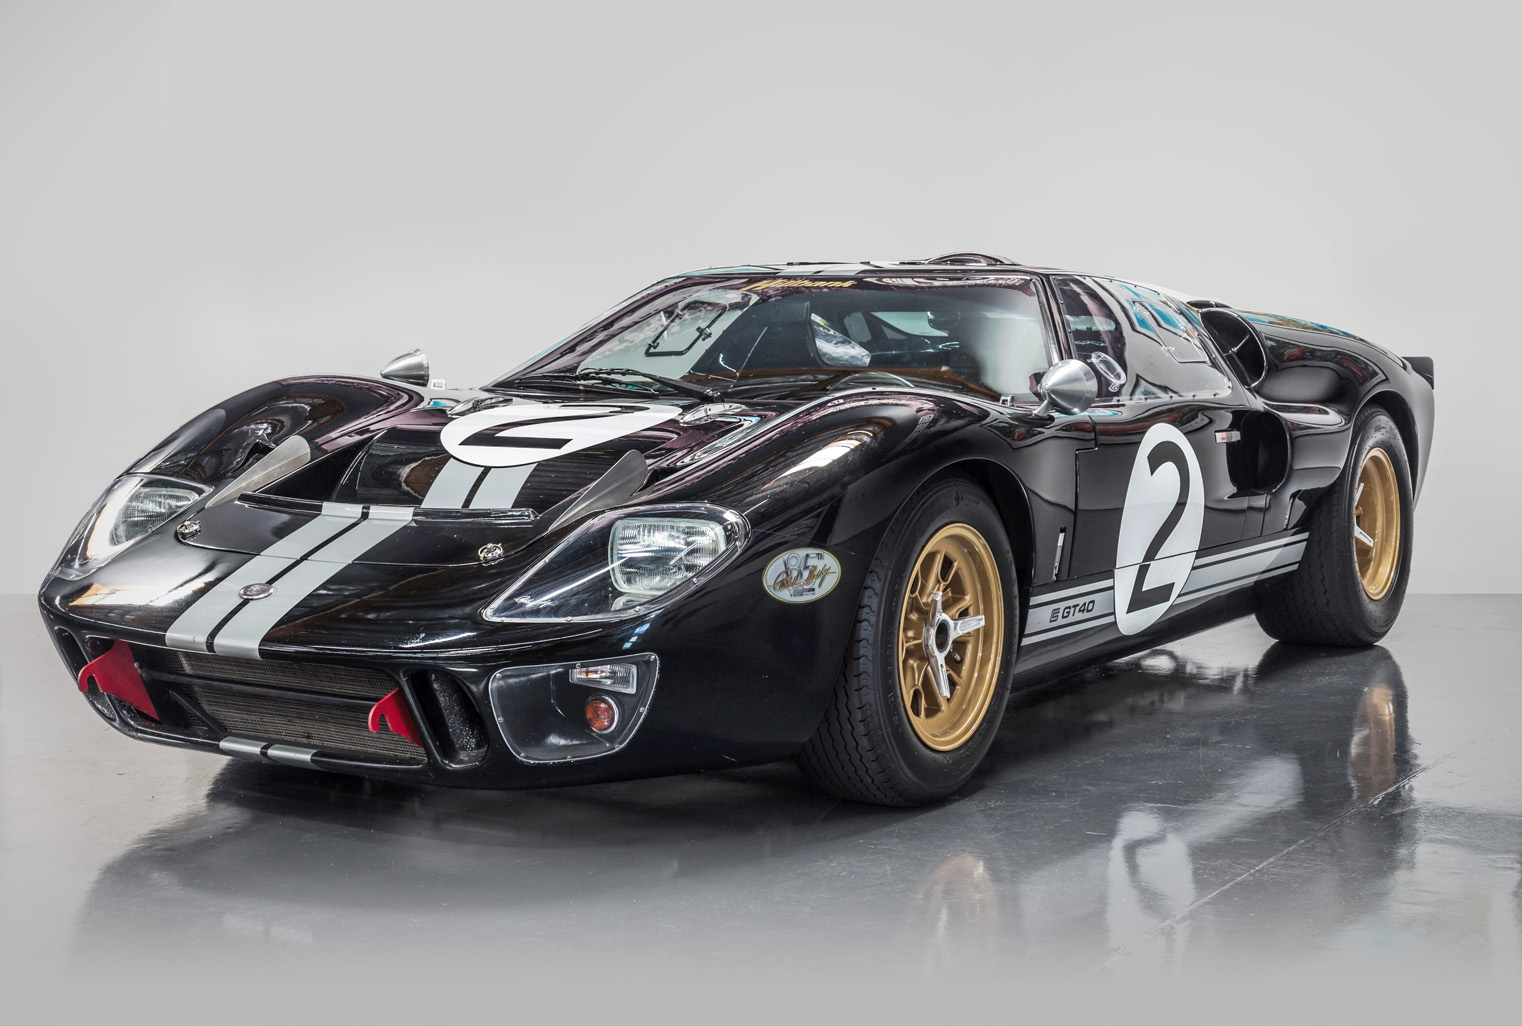 Superformance GT40 MarkII car for sale